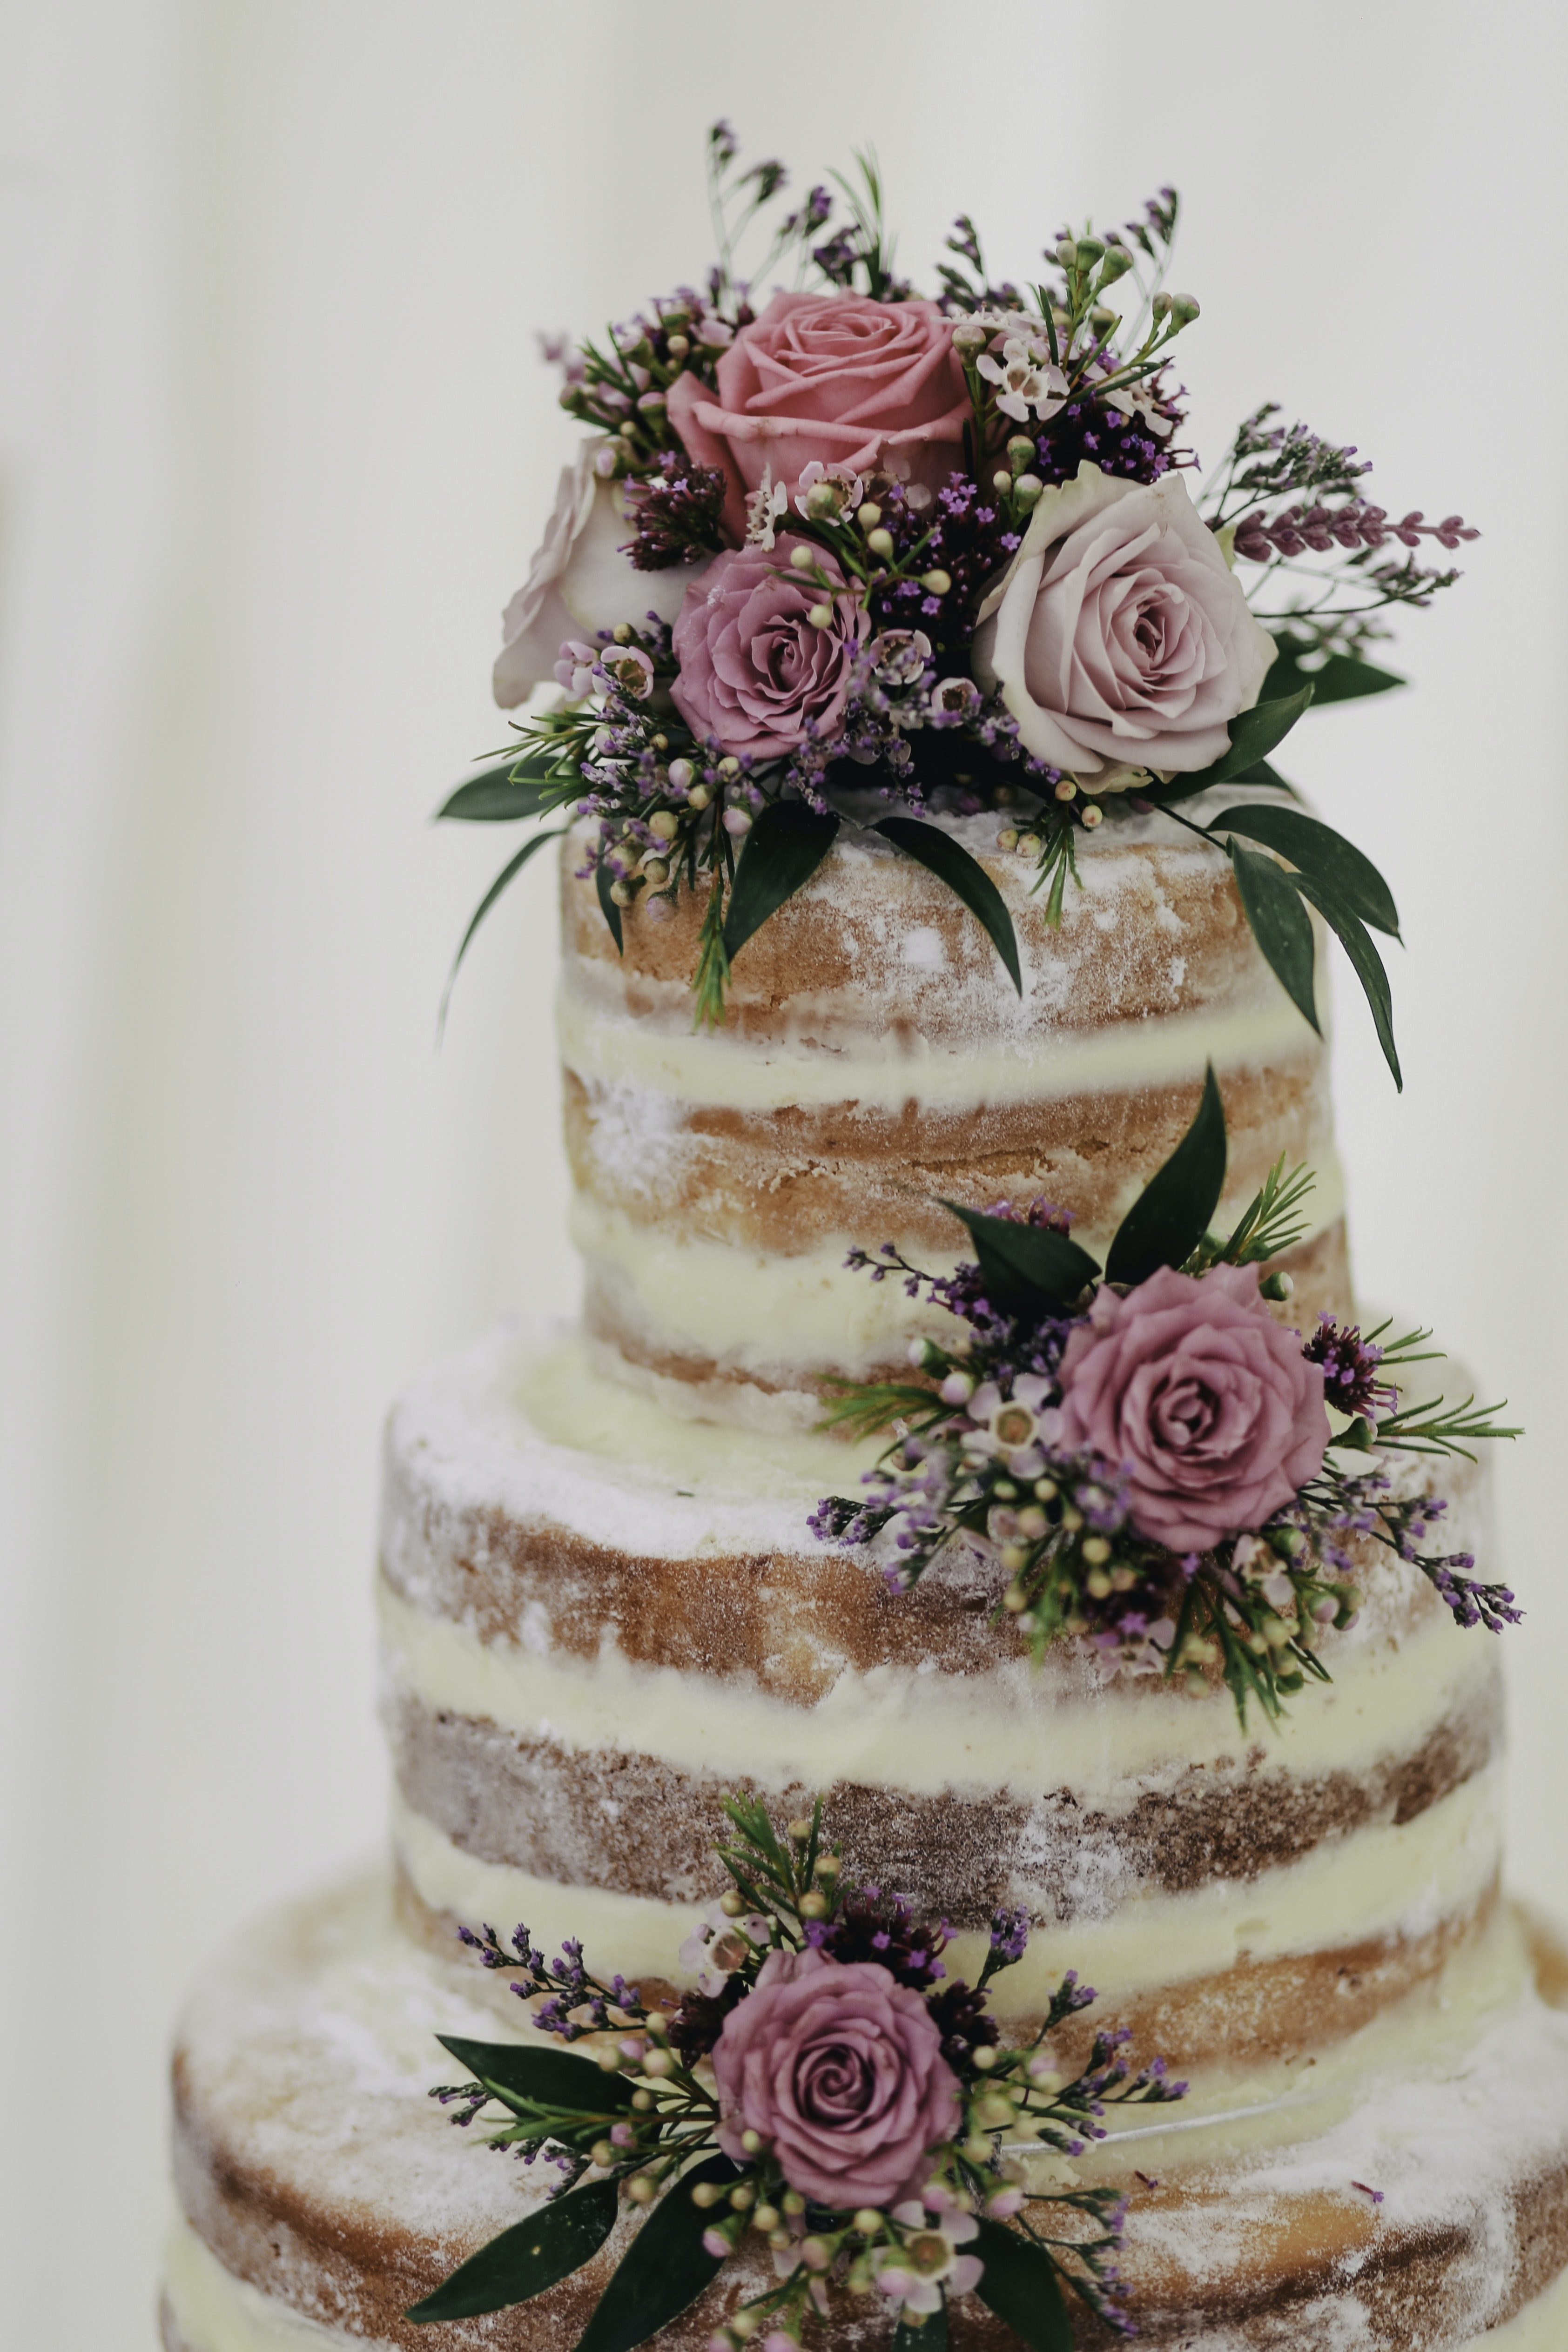 Three level wedding cake with powdered sugar and pink roses